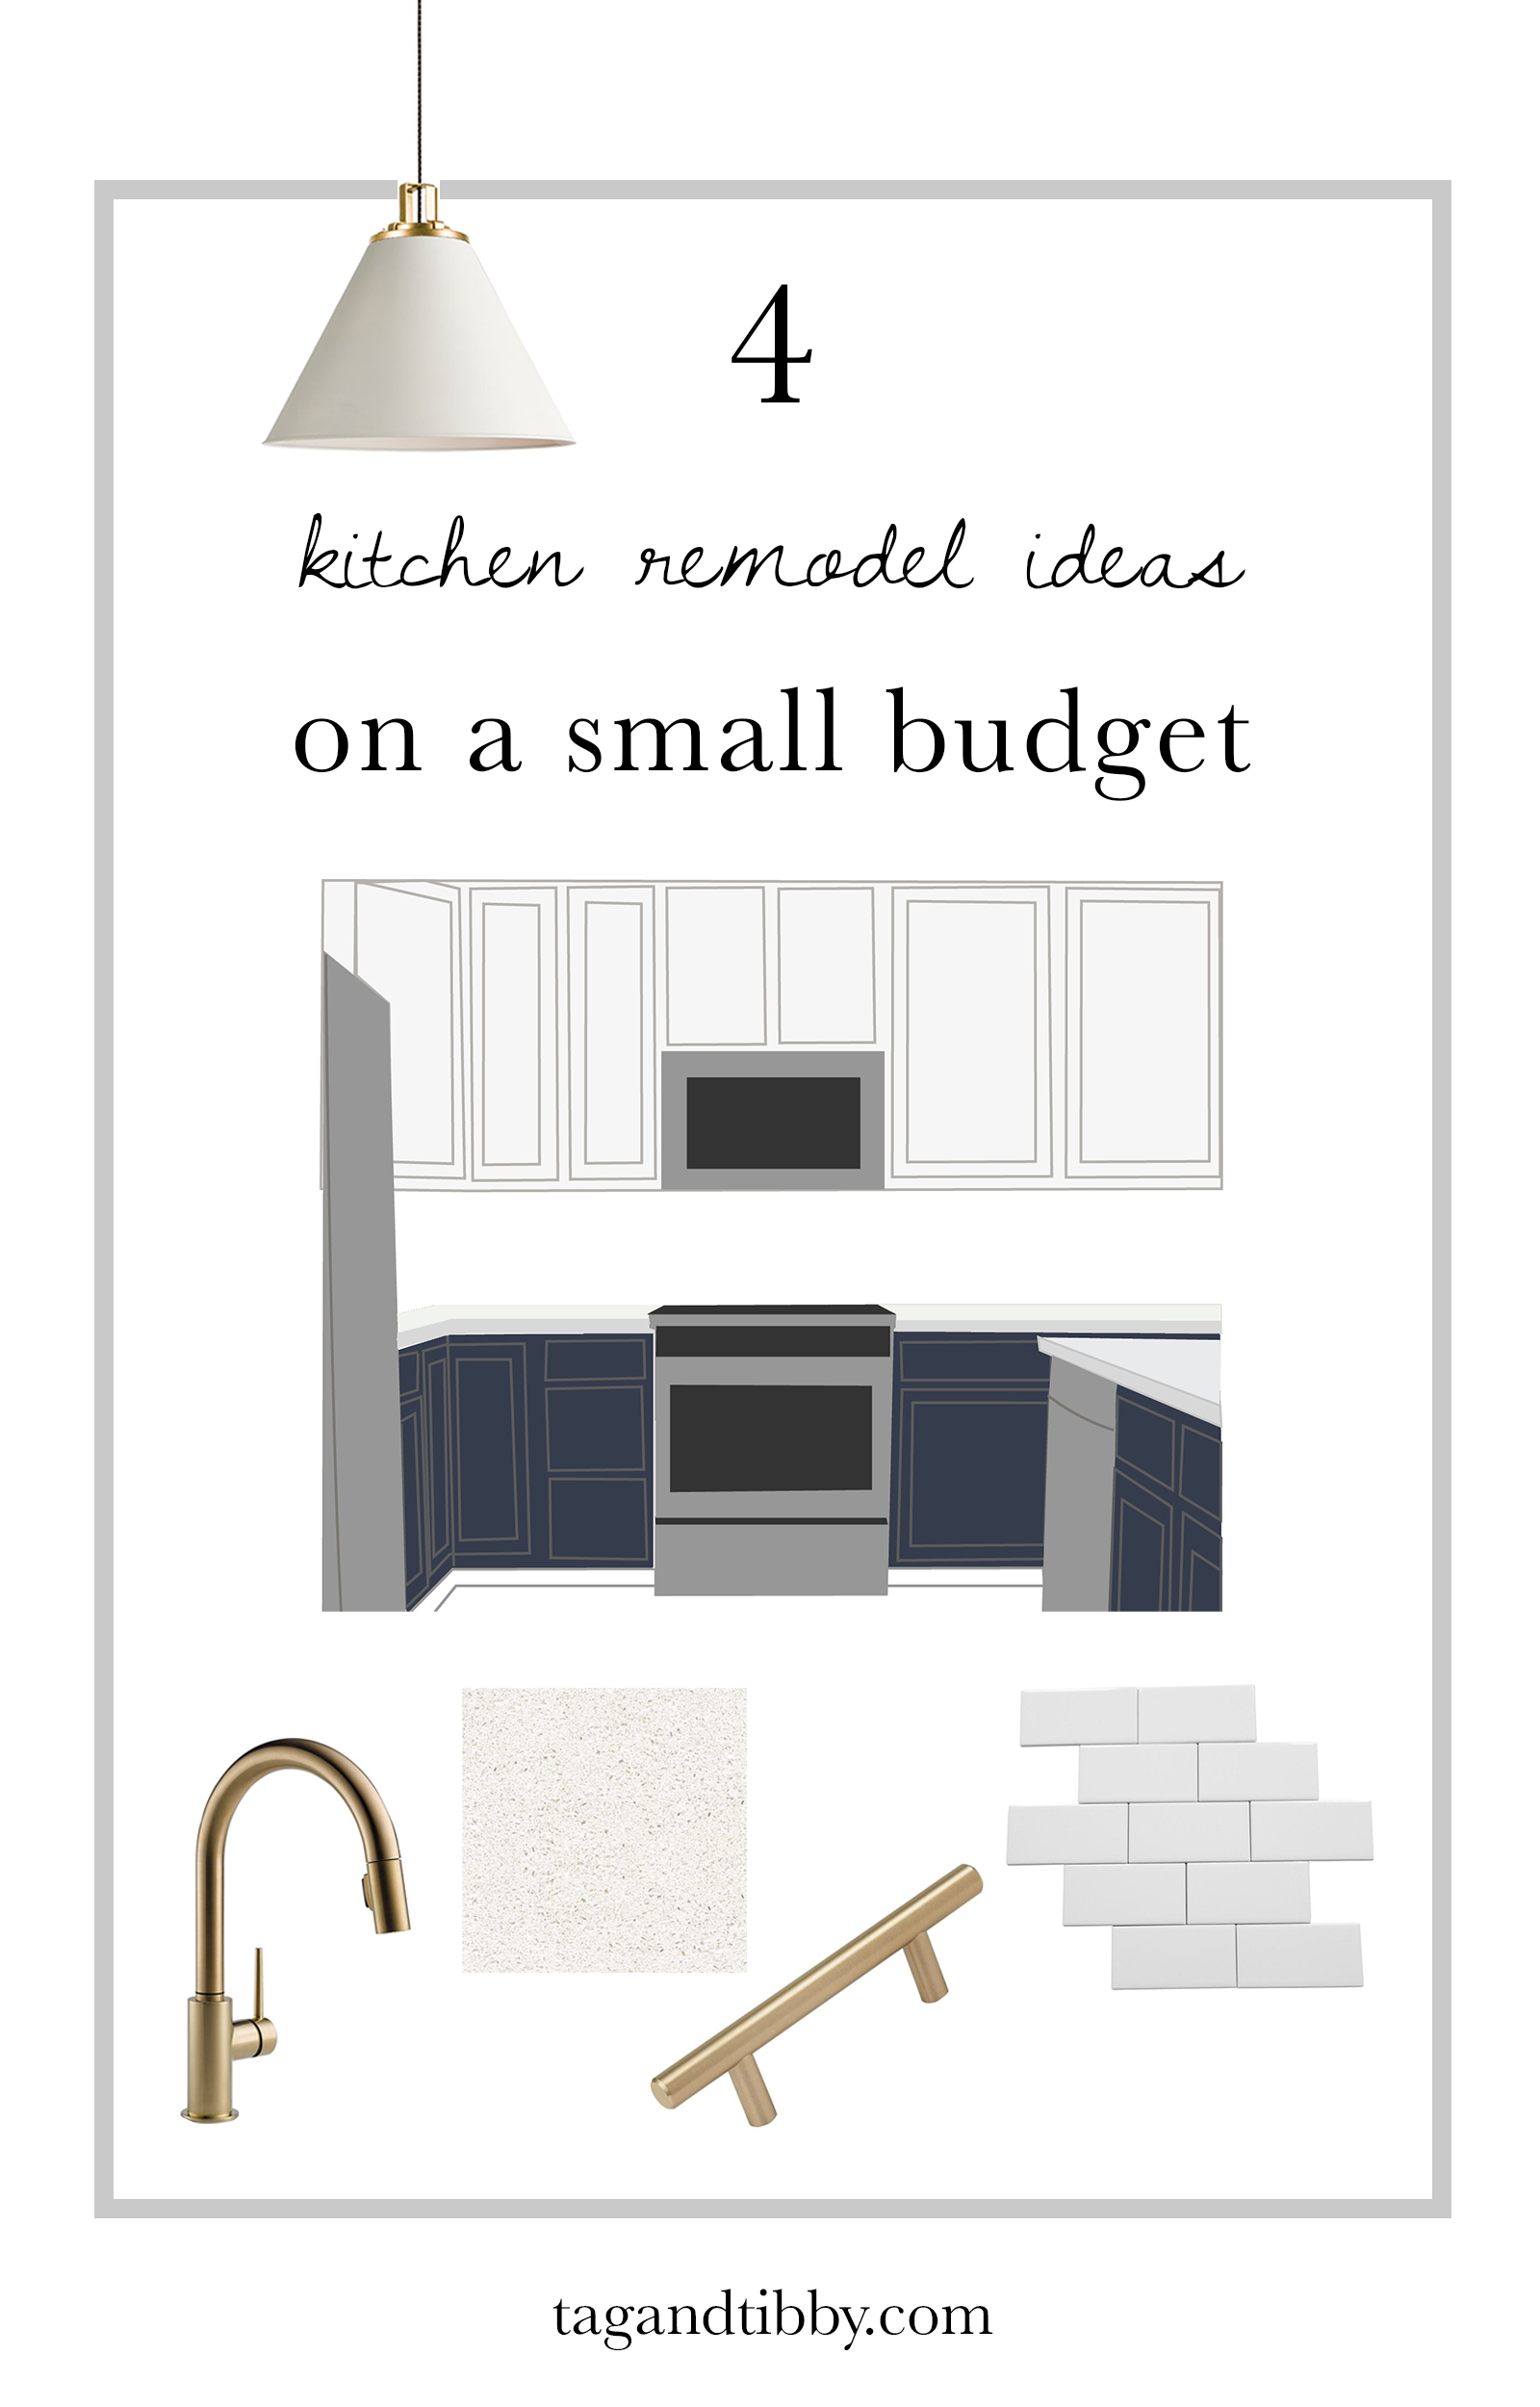 Small budget kitchen ideas at $500, $1500, $2500, $6000. Something for every budget! | Tag & Tibby